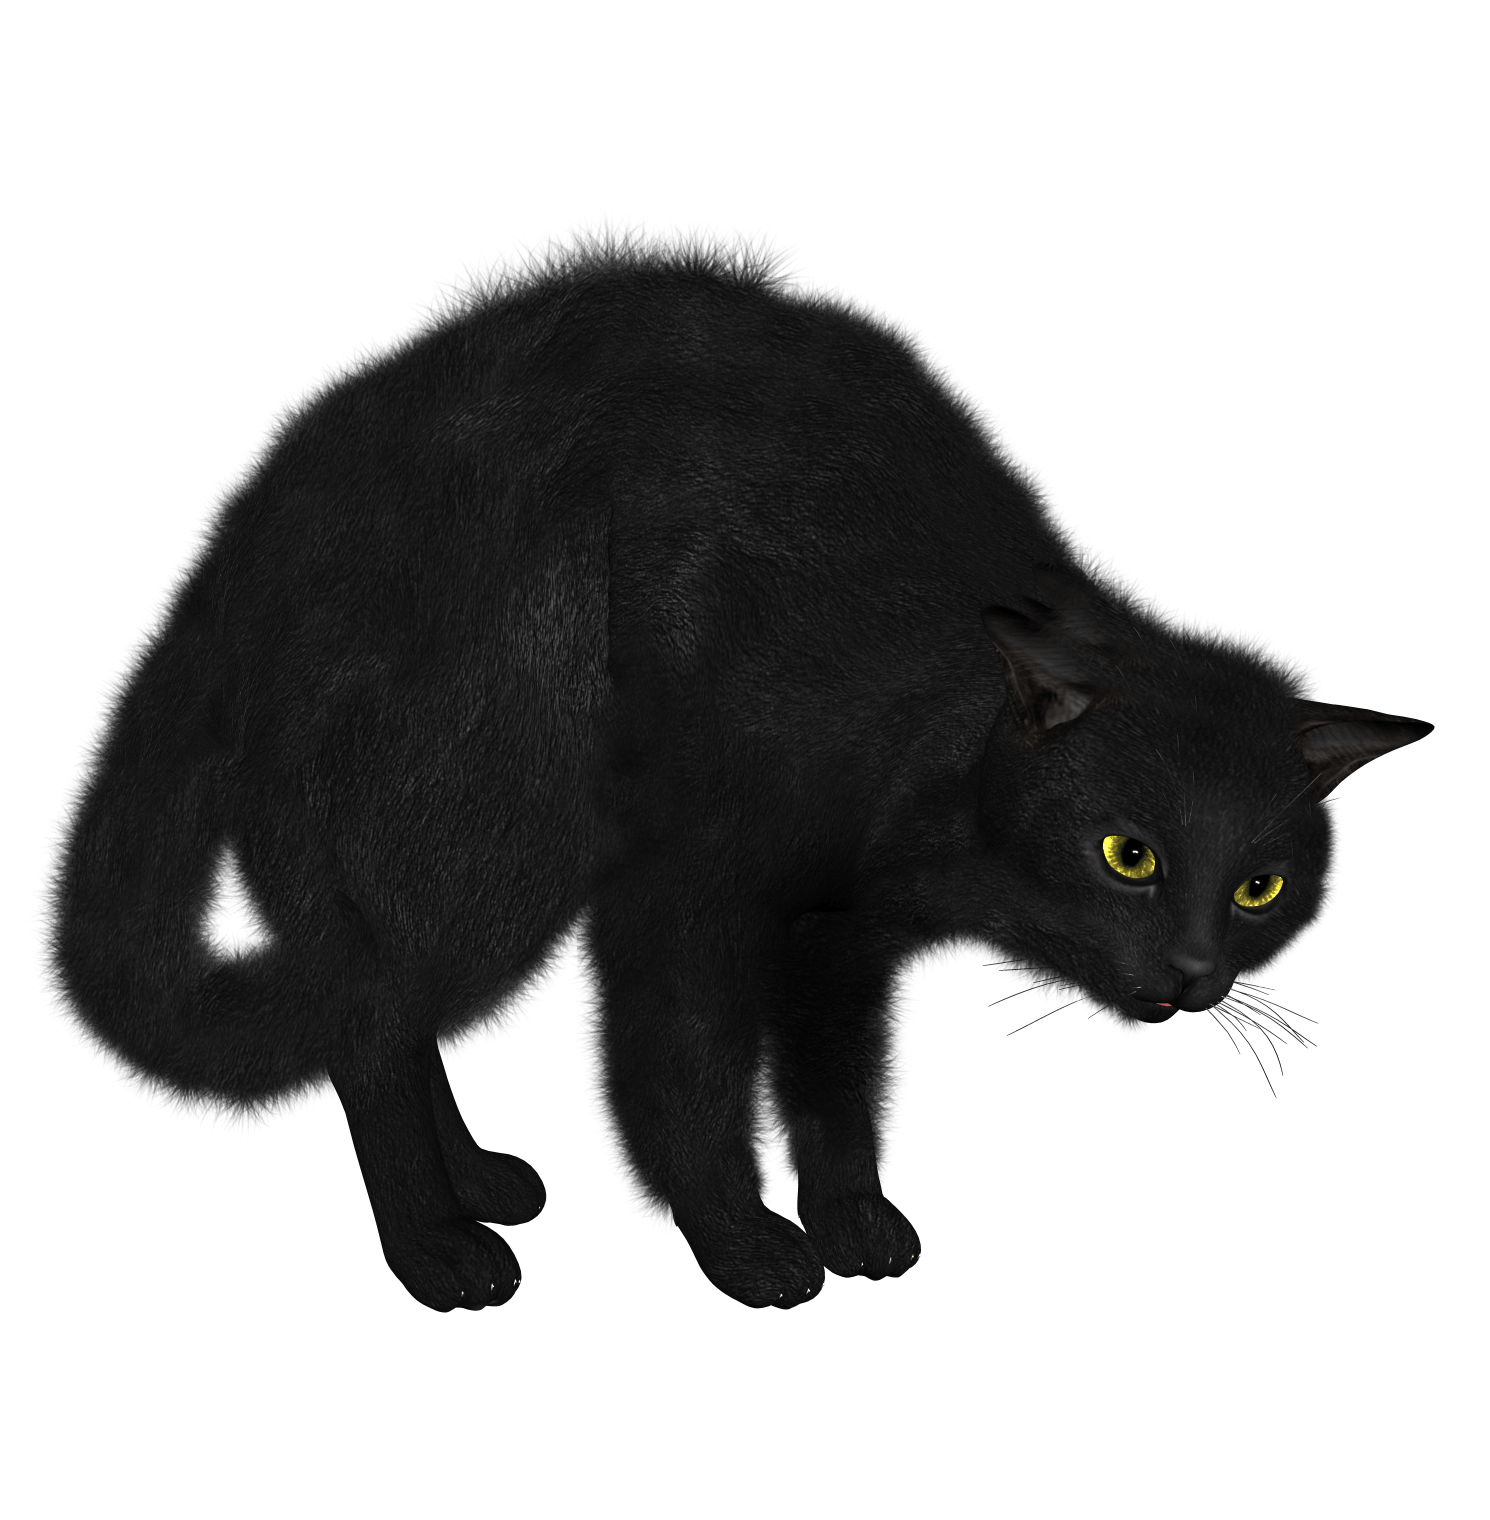 Black Cat Looking transparent PNG - StickPNG graphic royalty free library